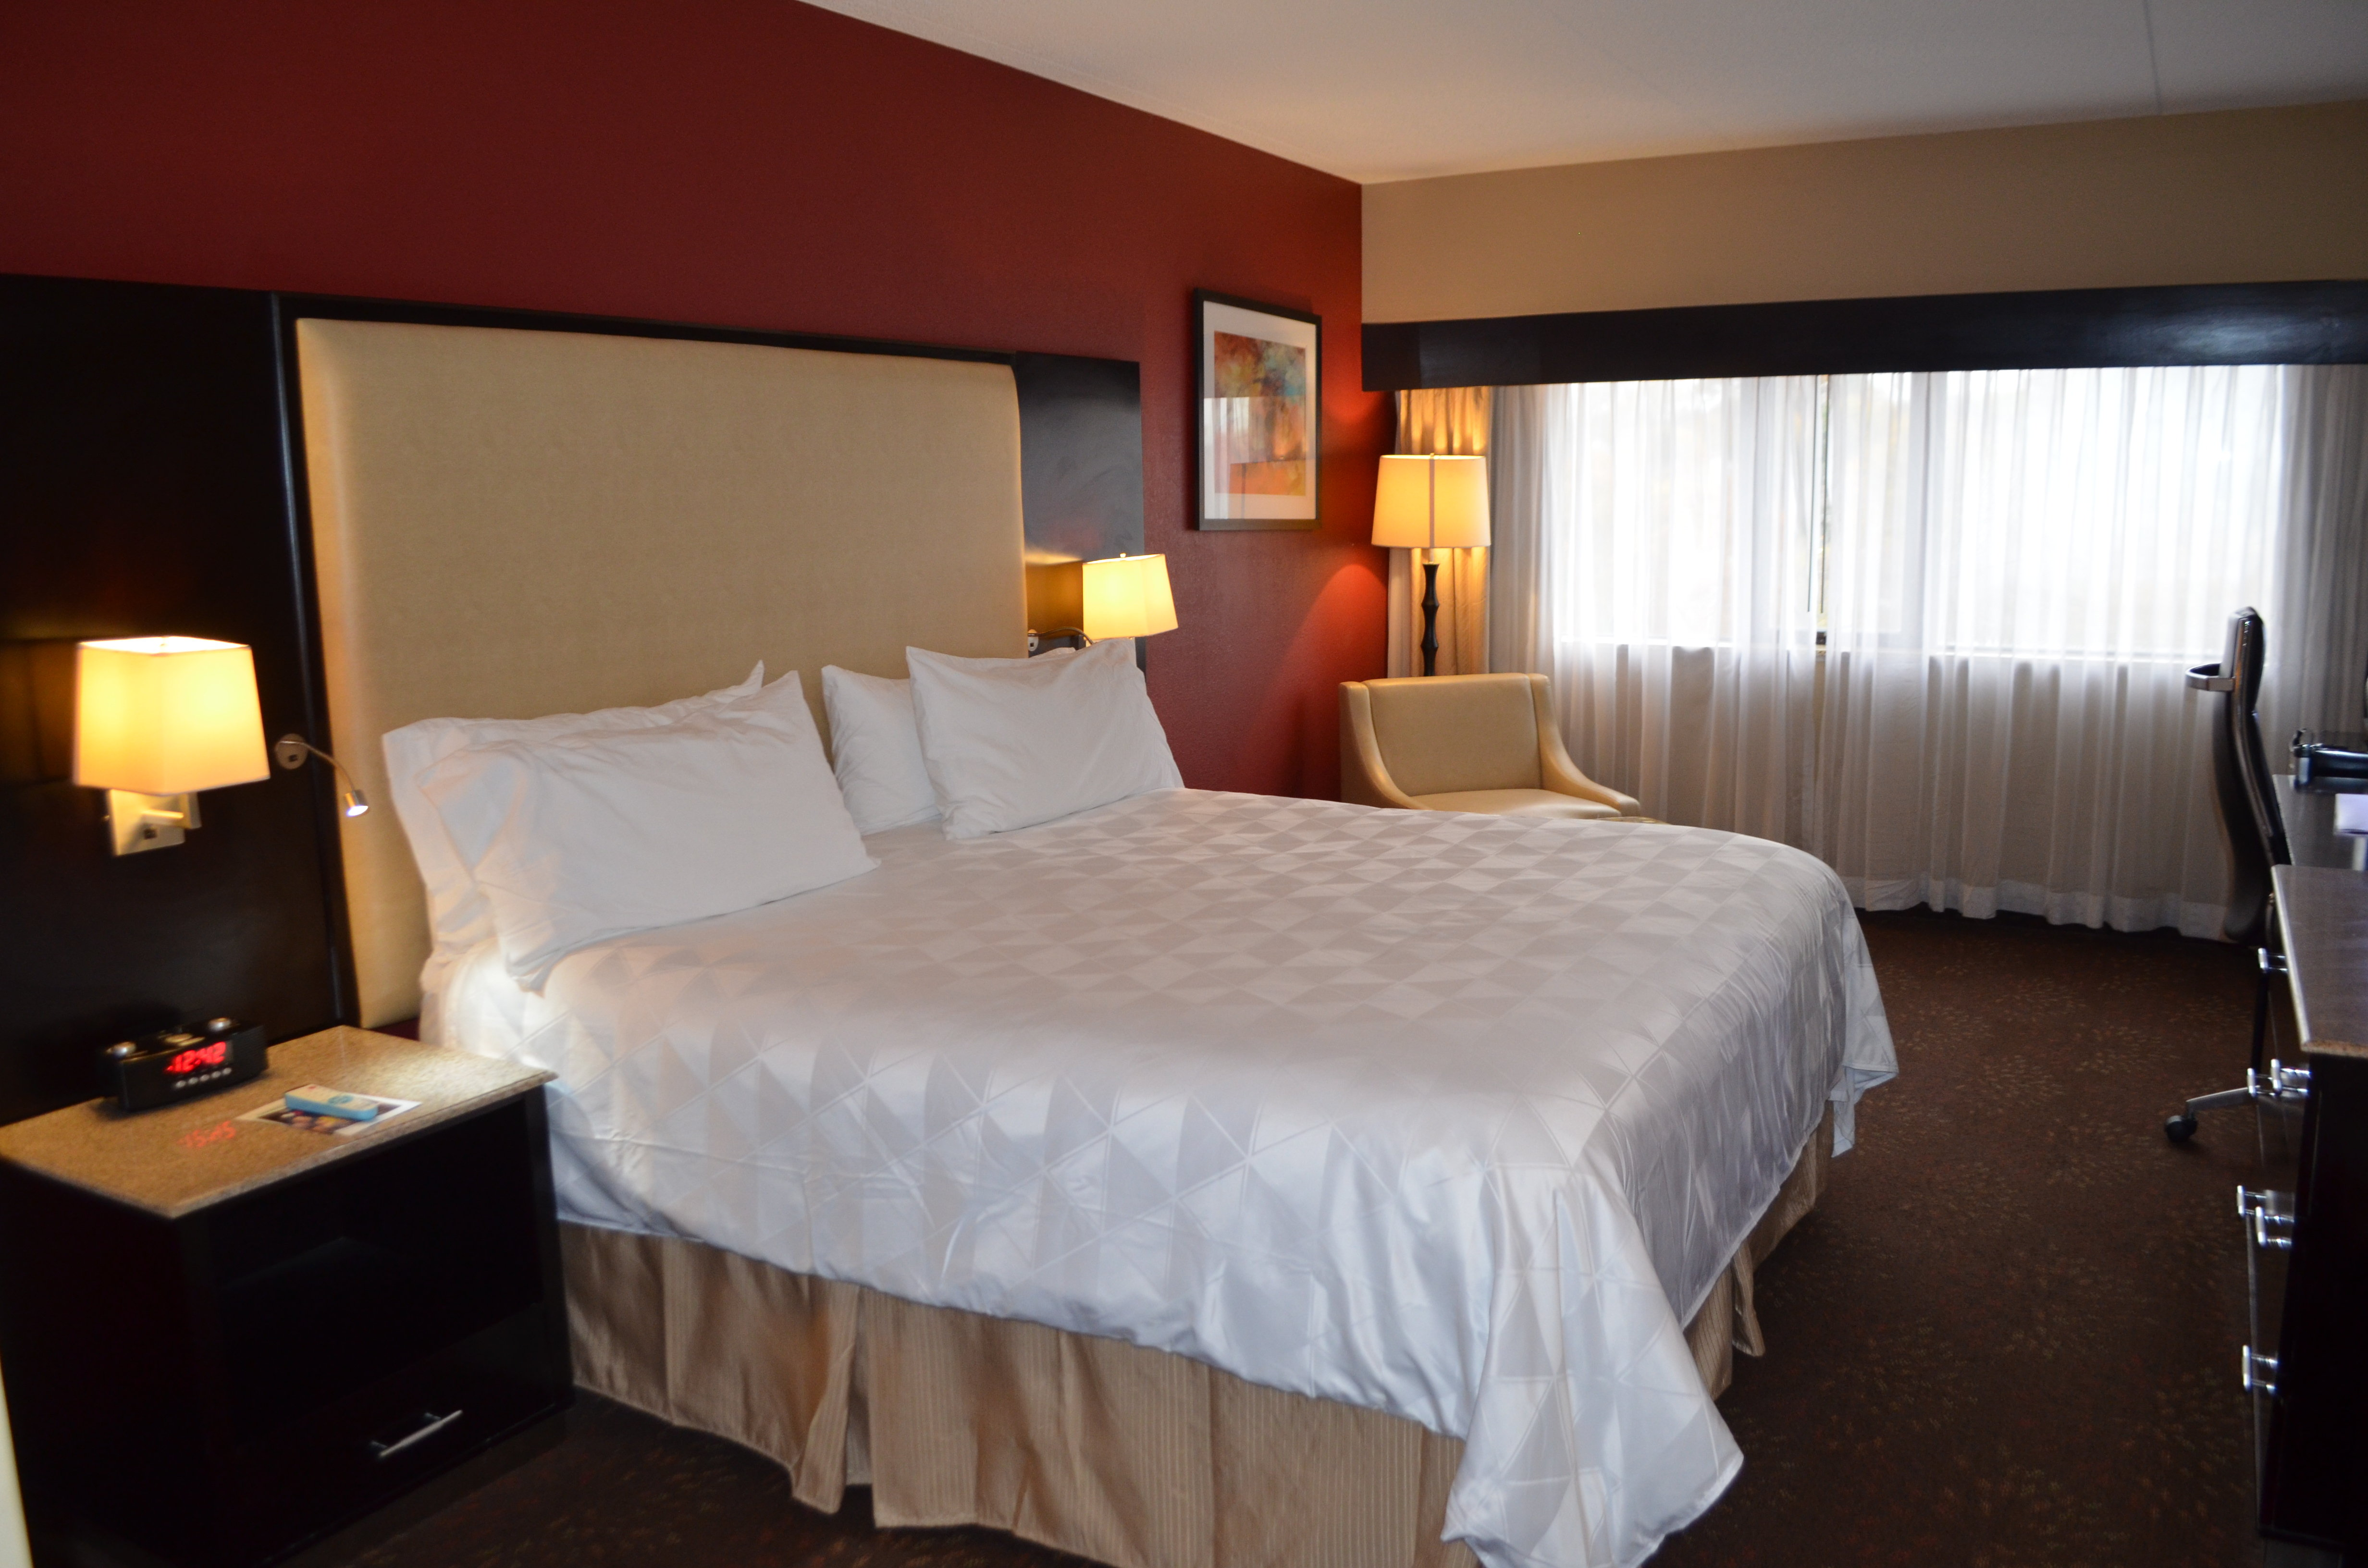 Holiday Inn Clinton Bridgewater, Hunterdon